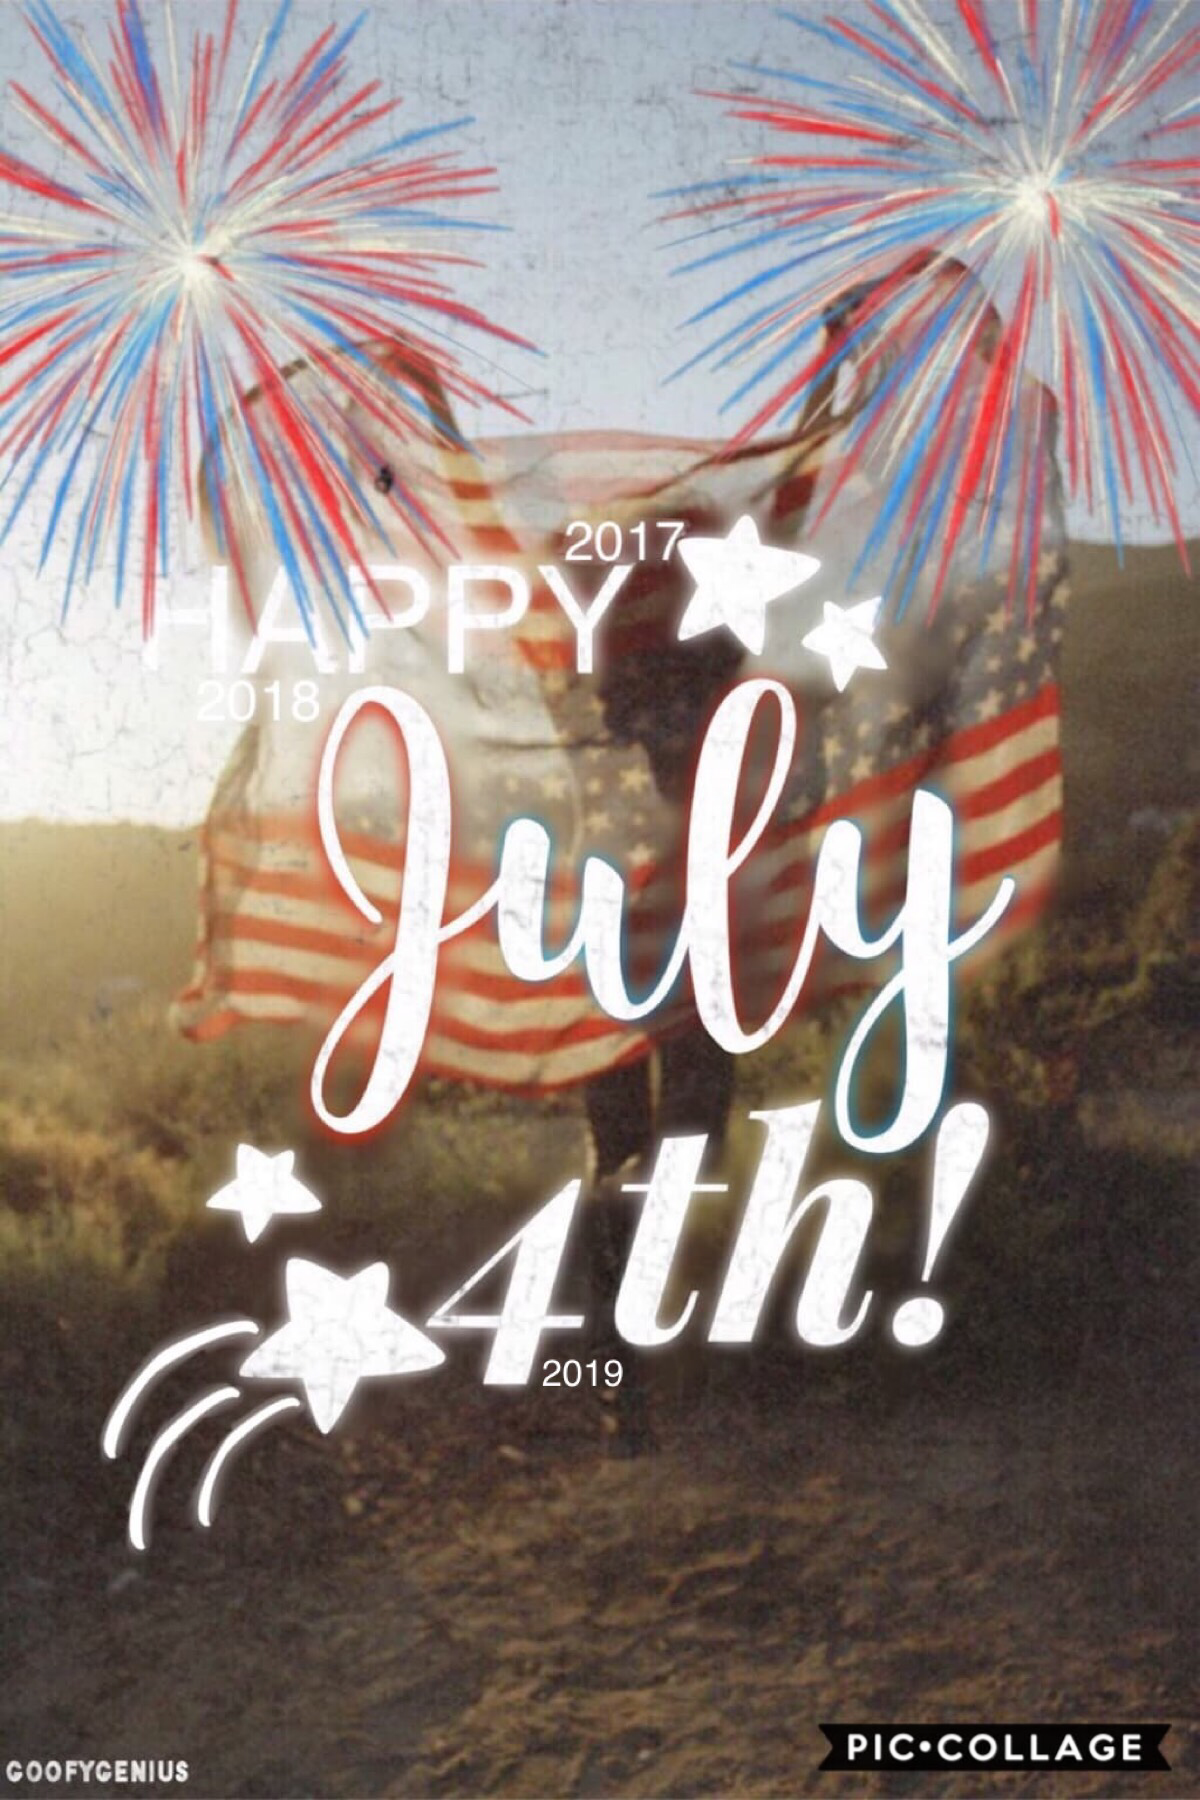 💥Tap Here💥 Happy 4th! Remember? I'm going to post this collage every year! Are you sick of it yet? It's only been 3 years, LOL. Rate 1-10 please. QOTD: Hot or Cold? AOTD: Cold